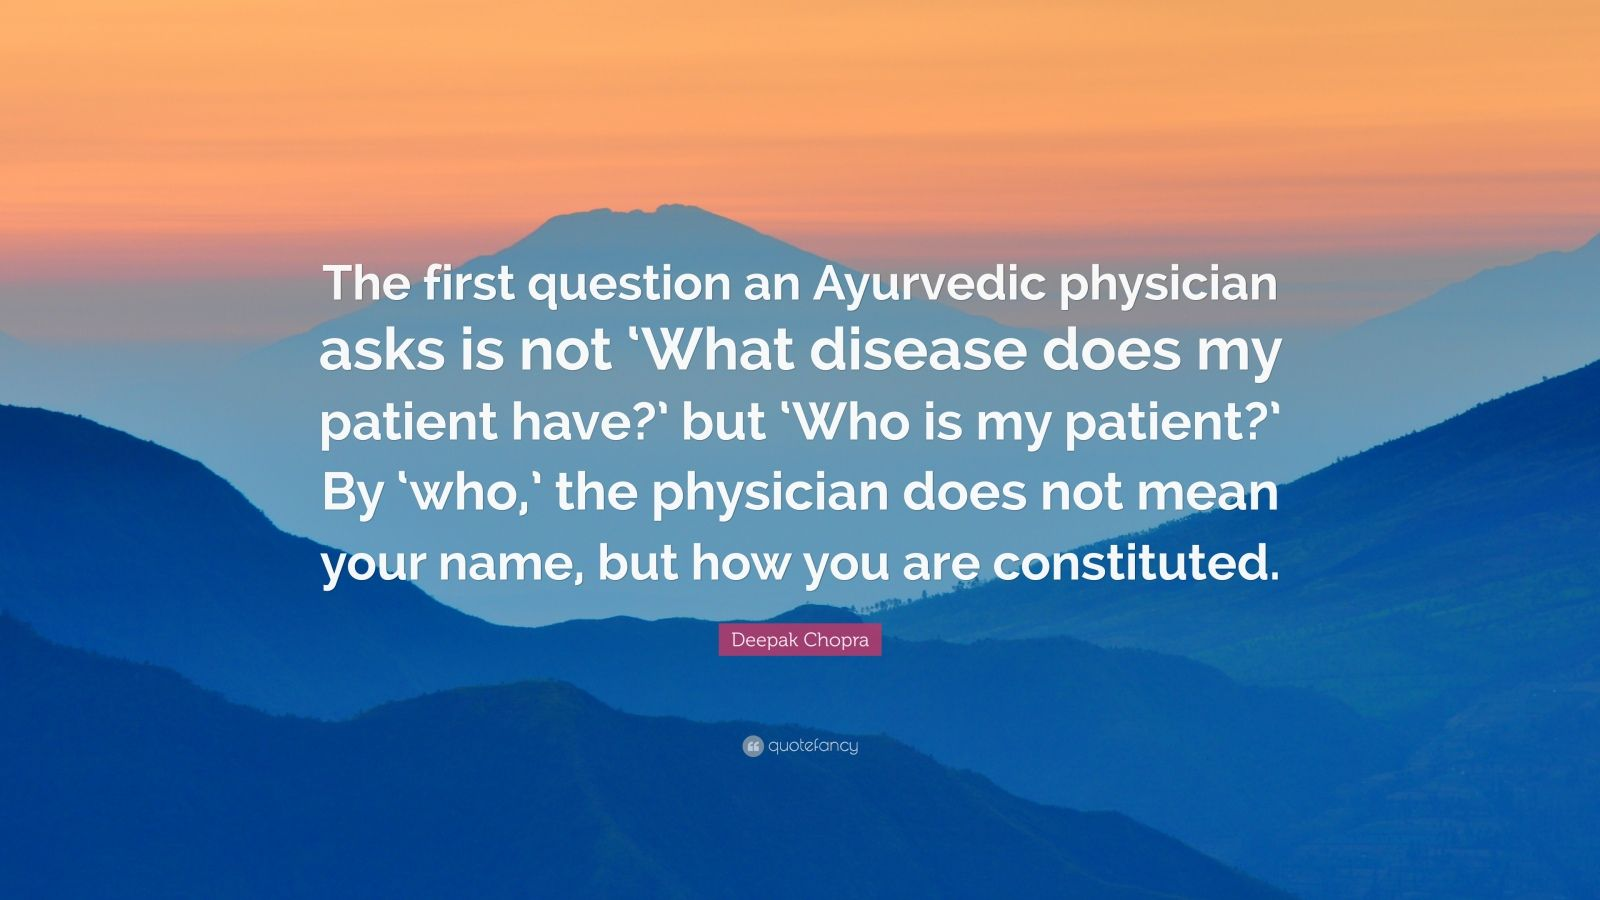 """Deepak Chopra Quote: """"The first question an Ayurvedic physician asks is not 'What disease does my patient have?' but 'Who is my patient?' By 'who,' the physician does not mean your name, but how you are constituted."""""""